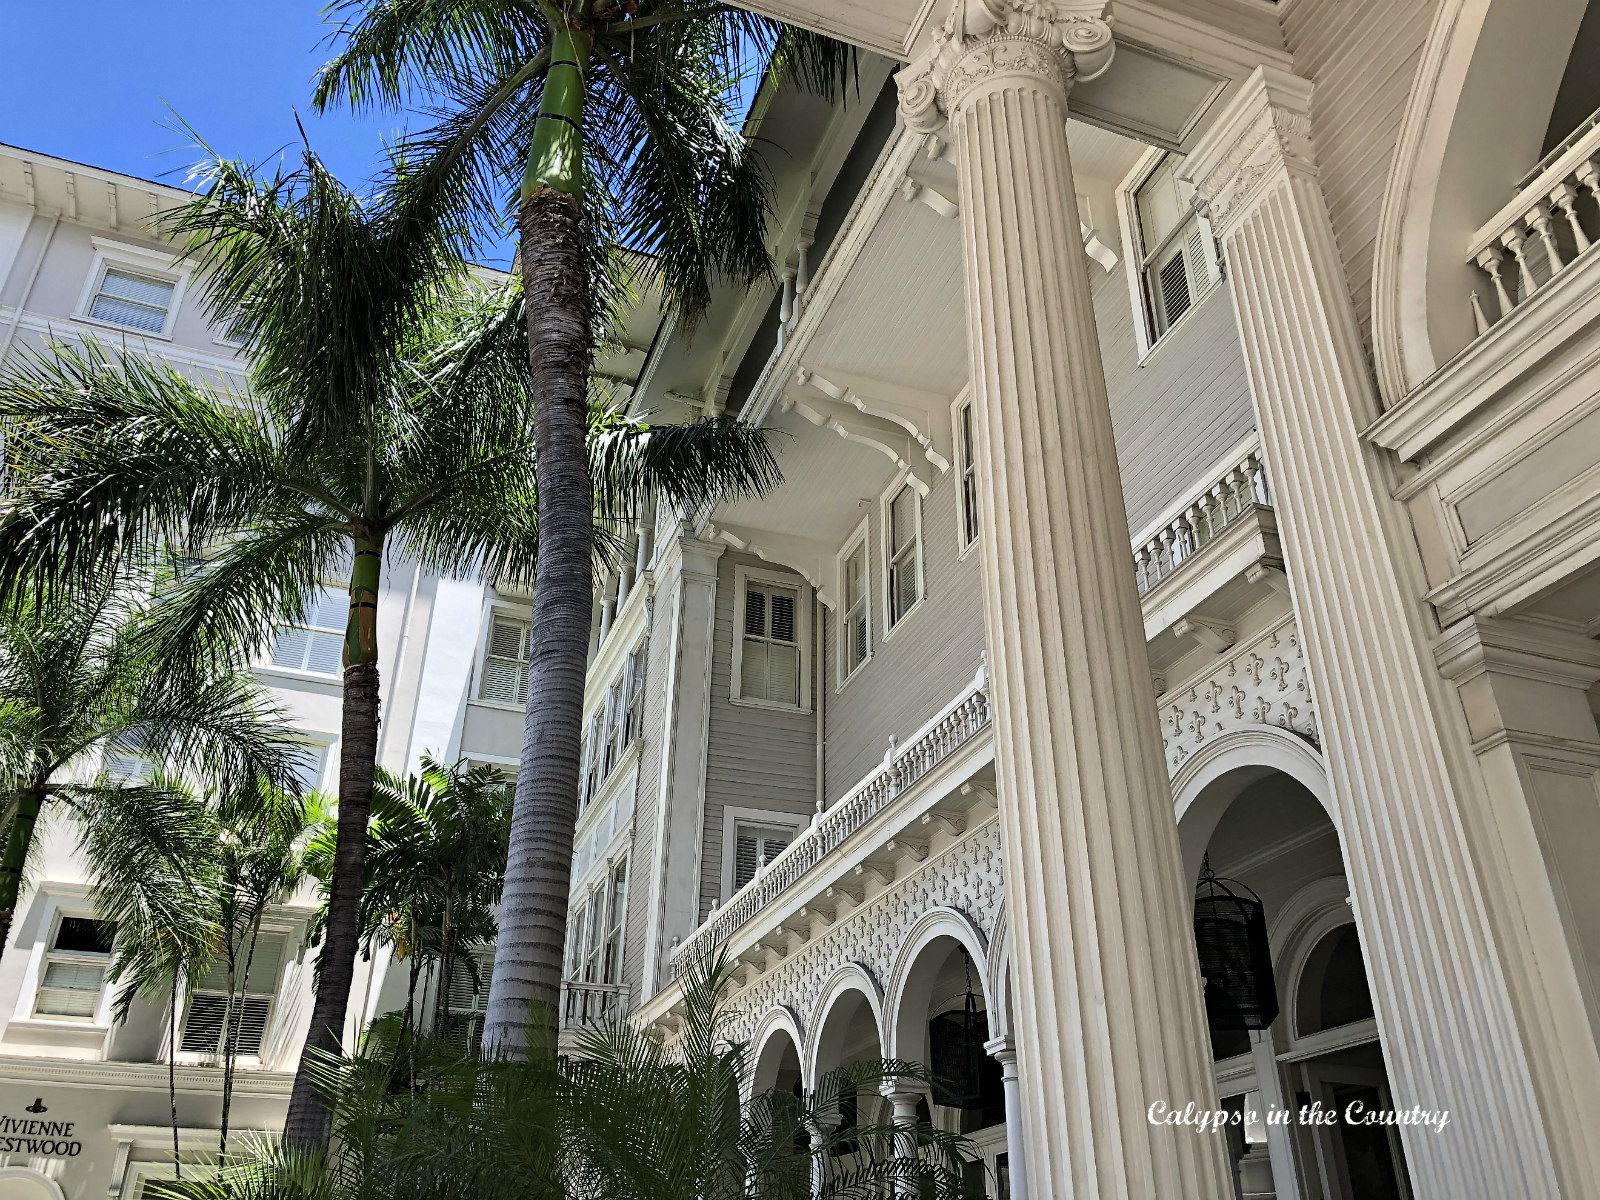 The grand Moana Surfrider Hotel in Oahu